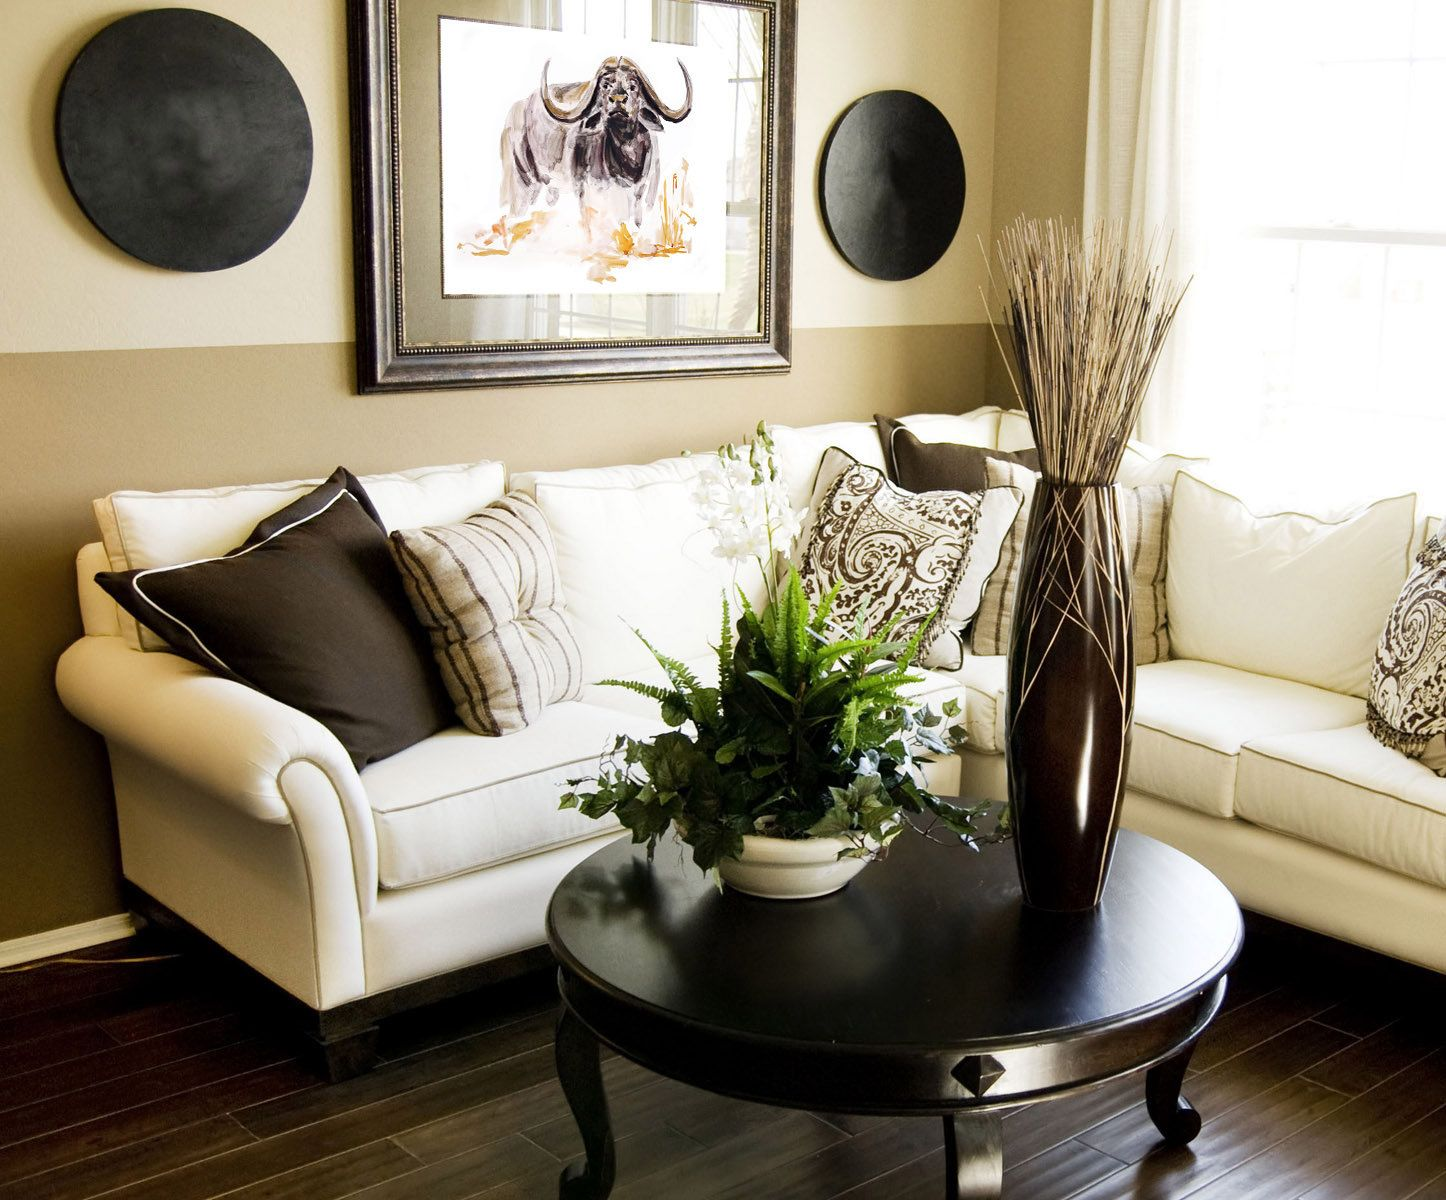 Home Decor South African Style | Bedroom and Living Room Image ...